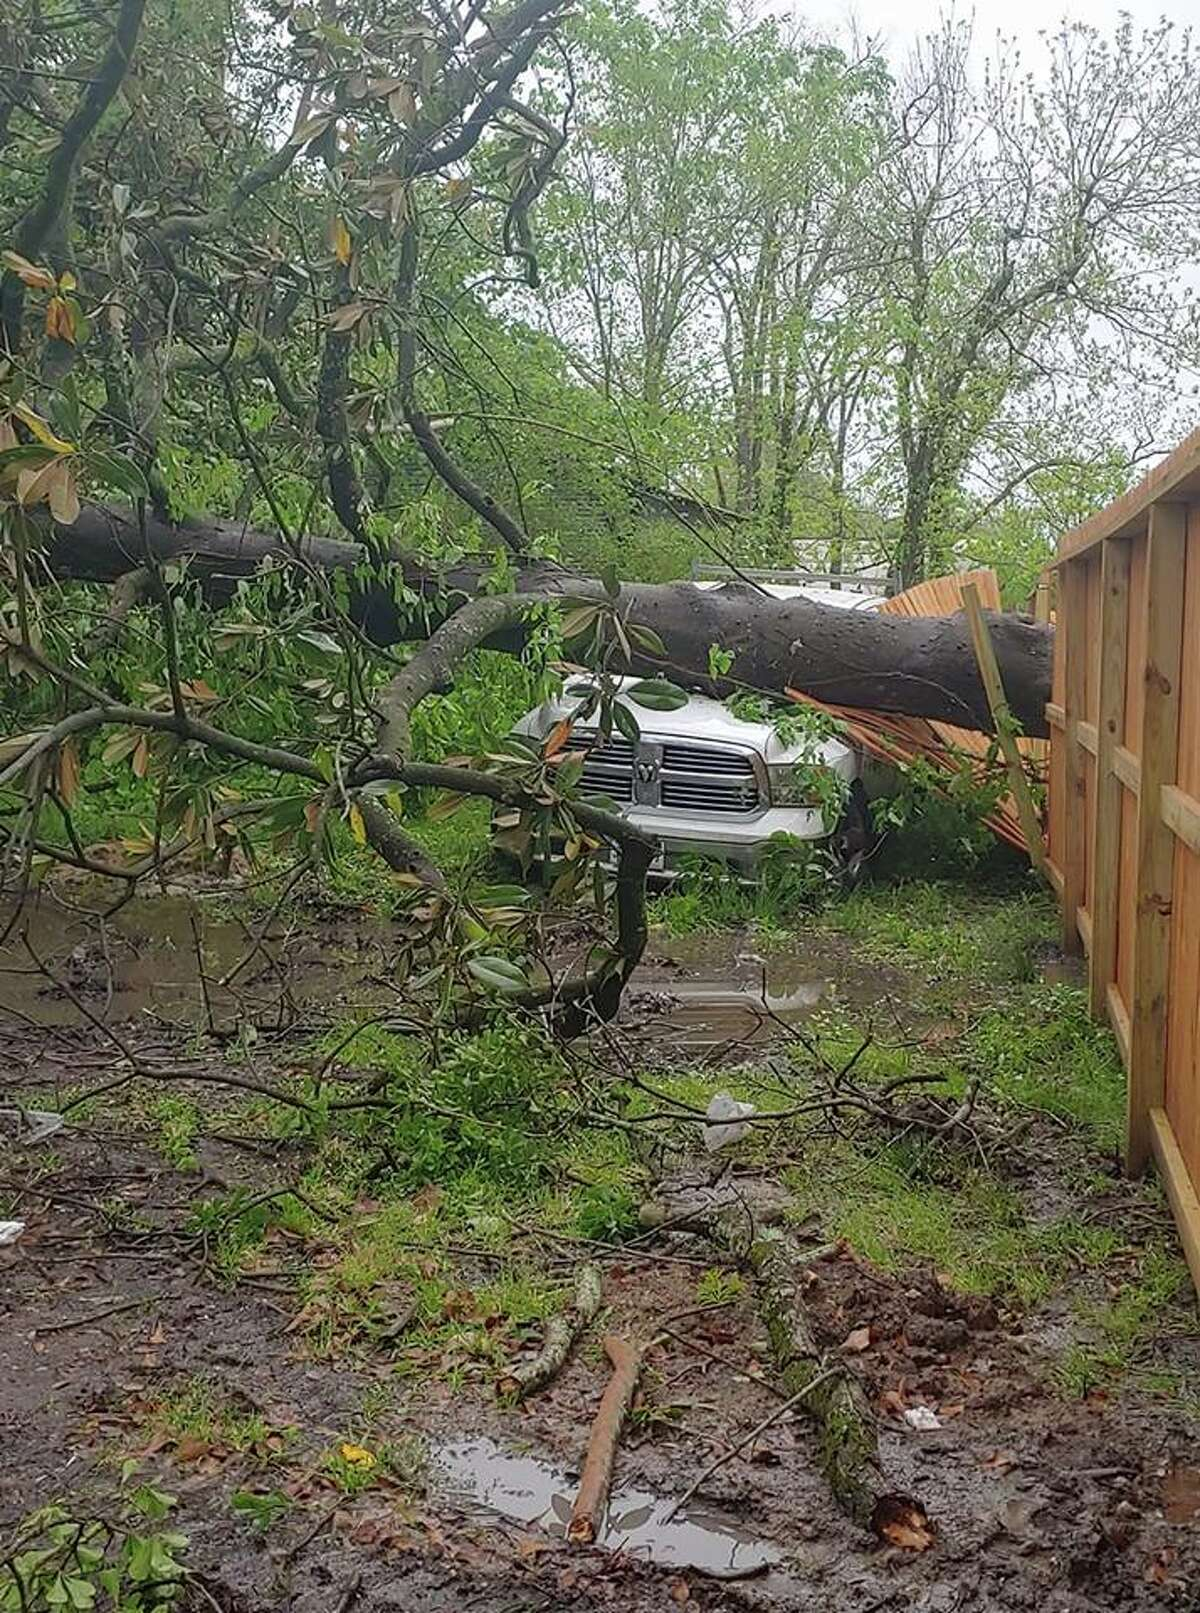 Dayton residents said fallen trees were a common site from the storm, with some hitting parked cars. Photo courtesy Jennifer Greak Cannaday >>> Click through to see more damage throughout the area